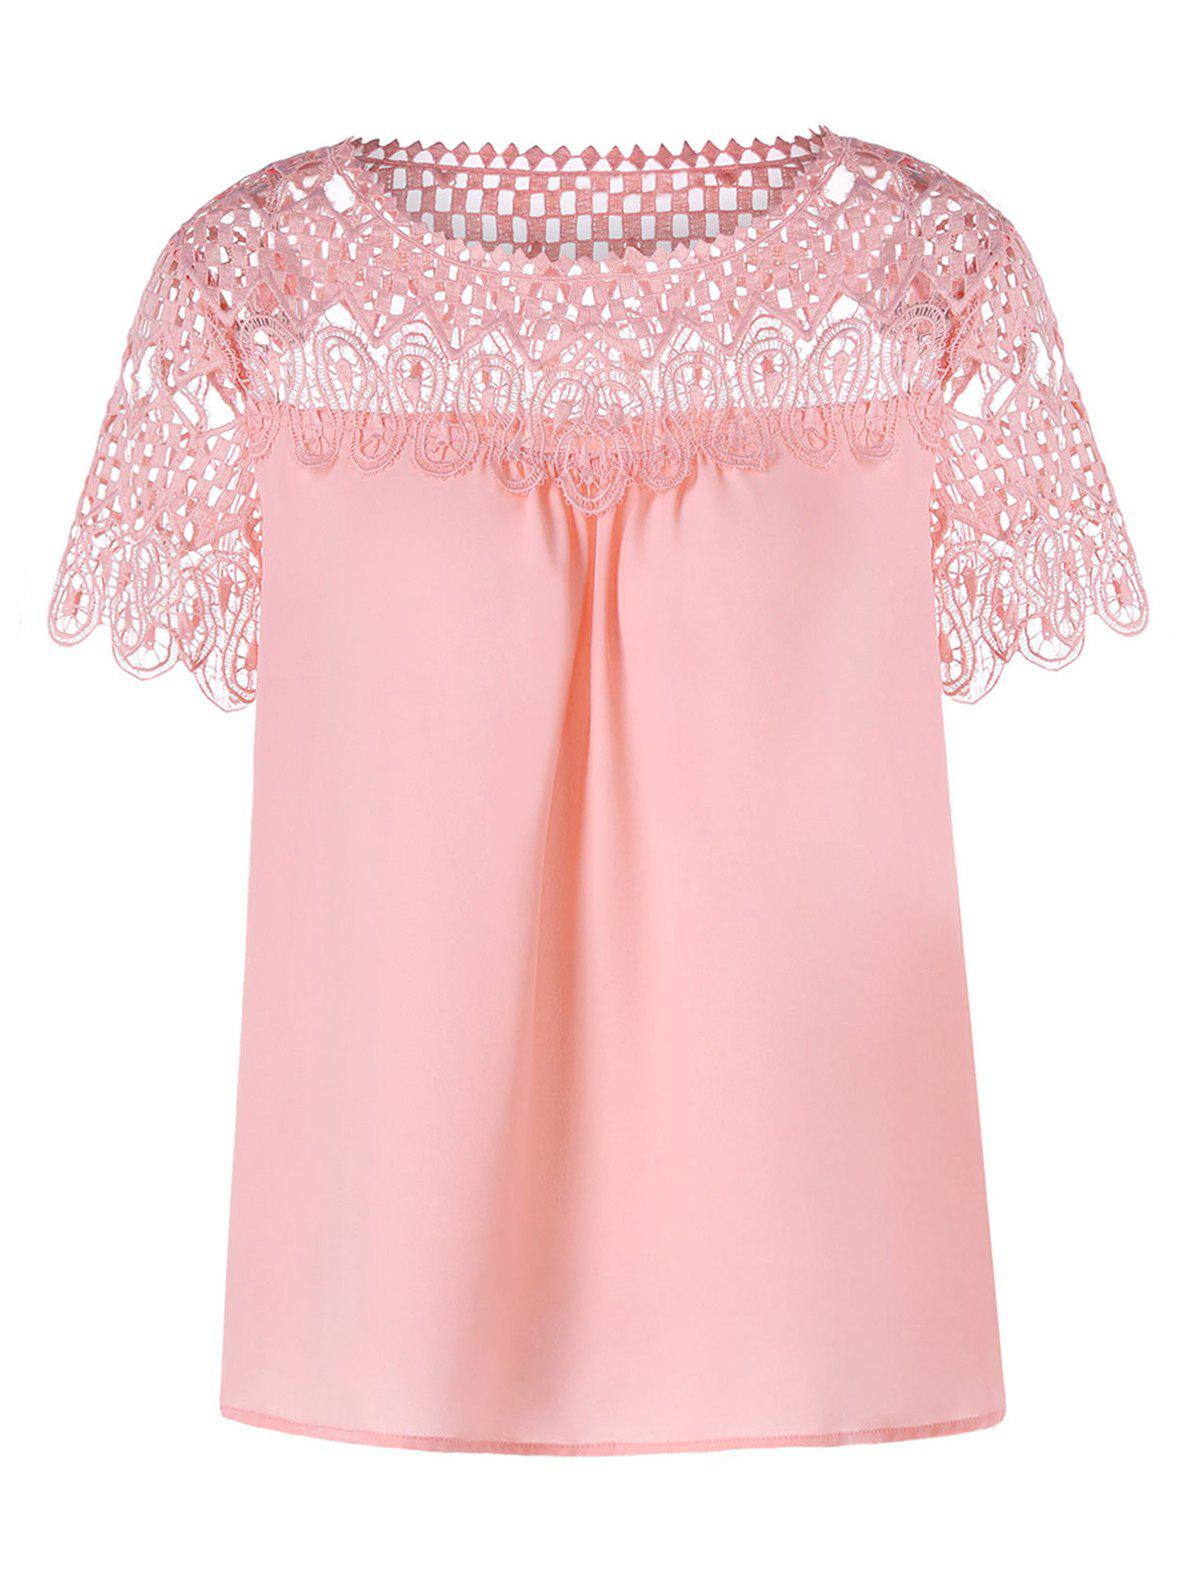 Lace Panel Hollow Out Blouse - PIG PINK XL